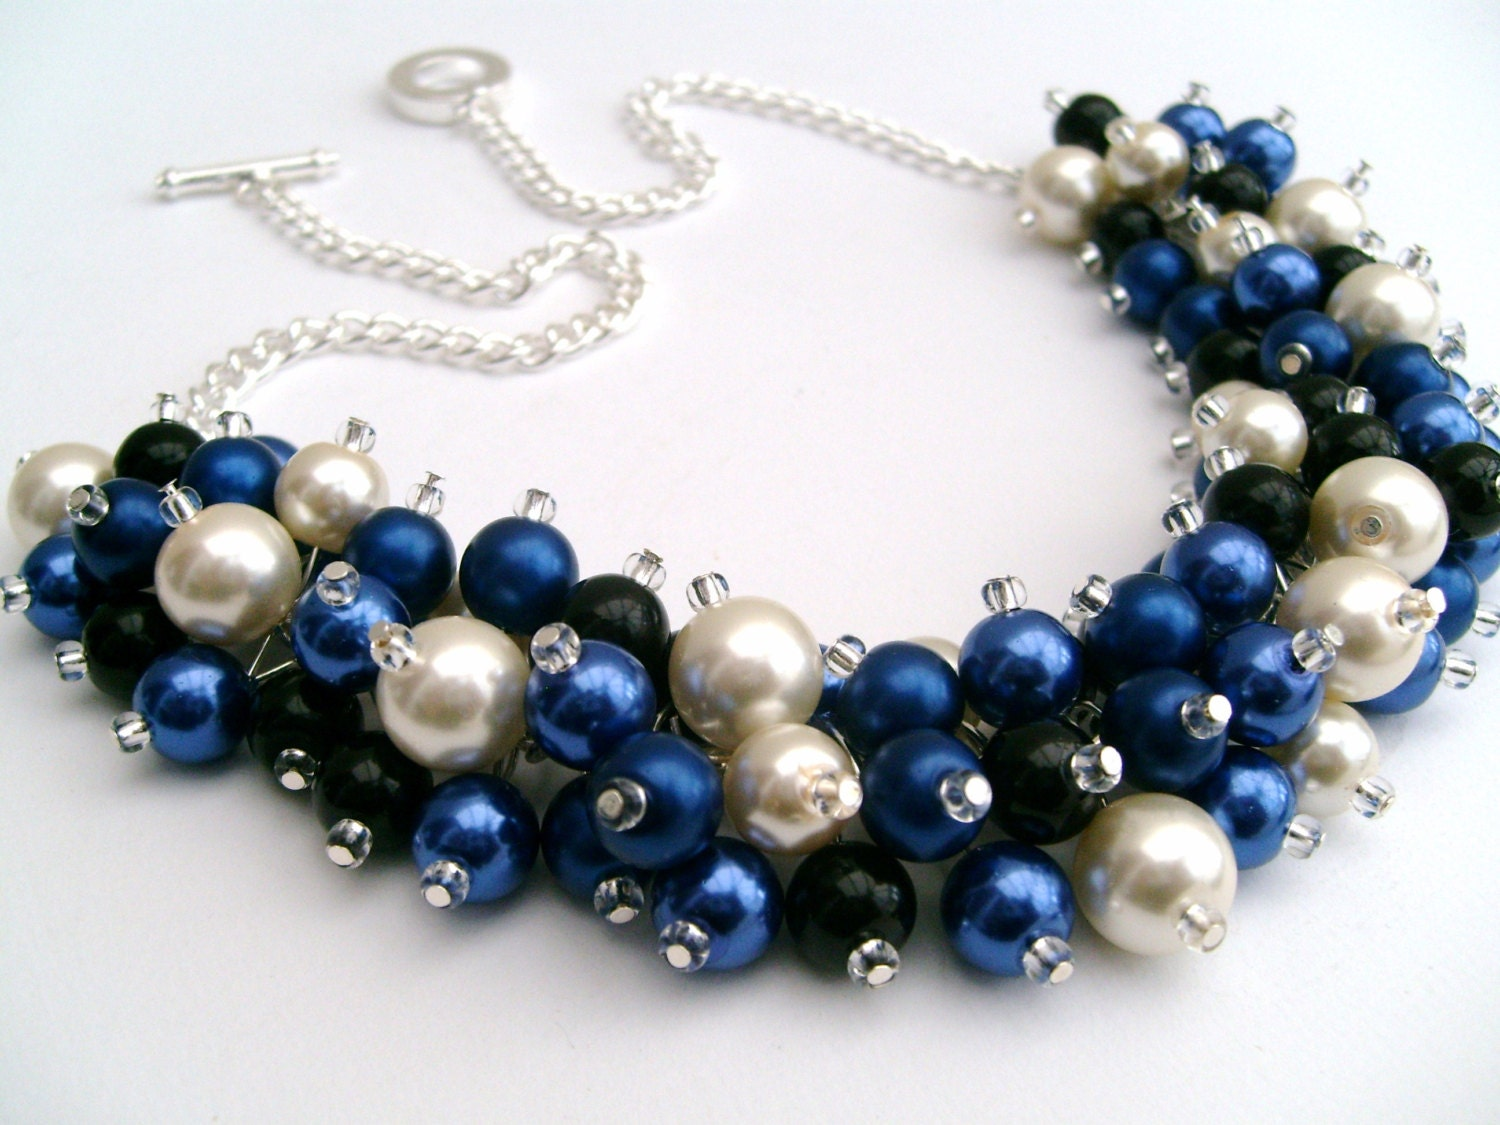 Cobalt Blue Pearl Beaded Necklace With Black And Ivory